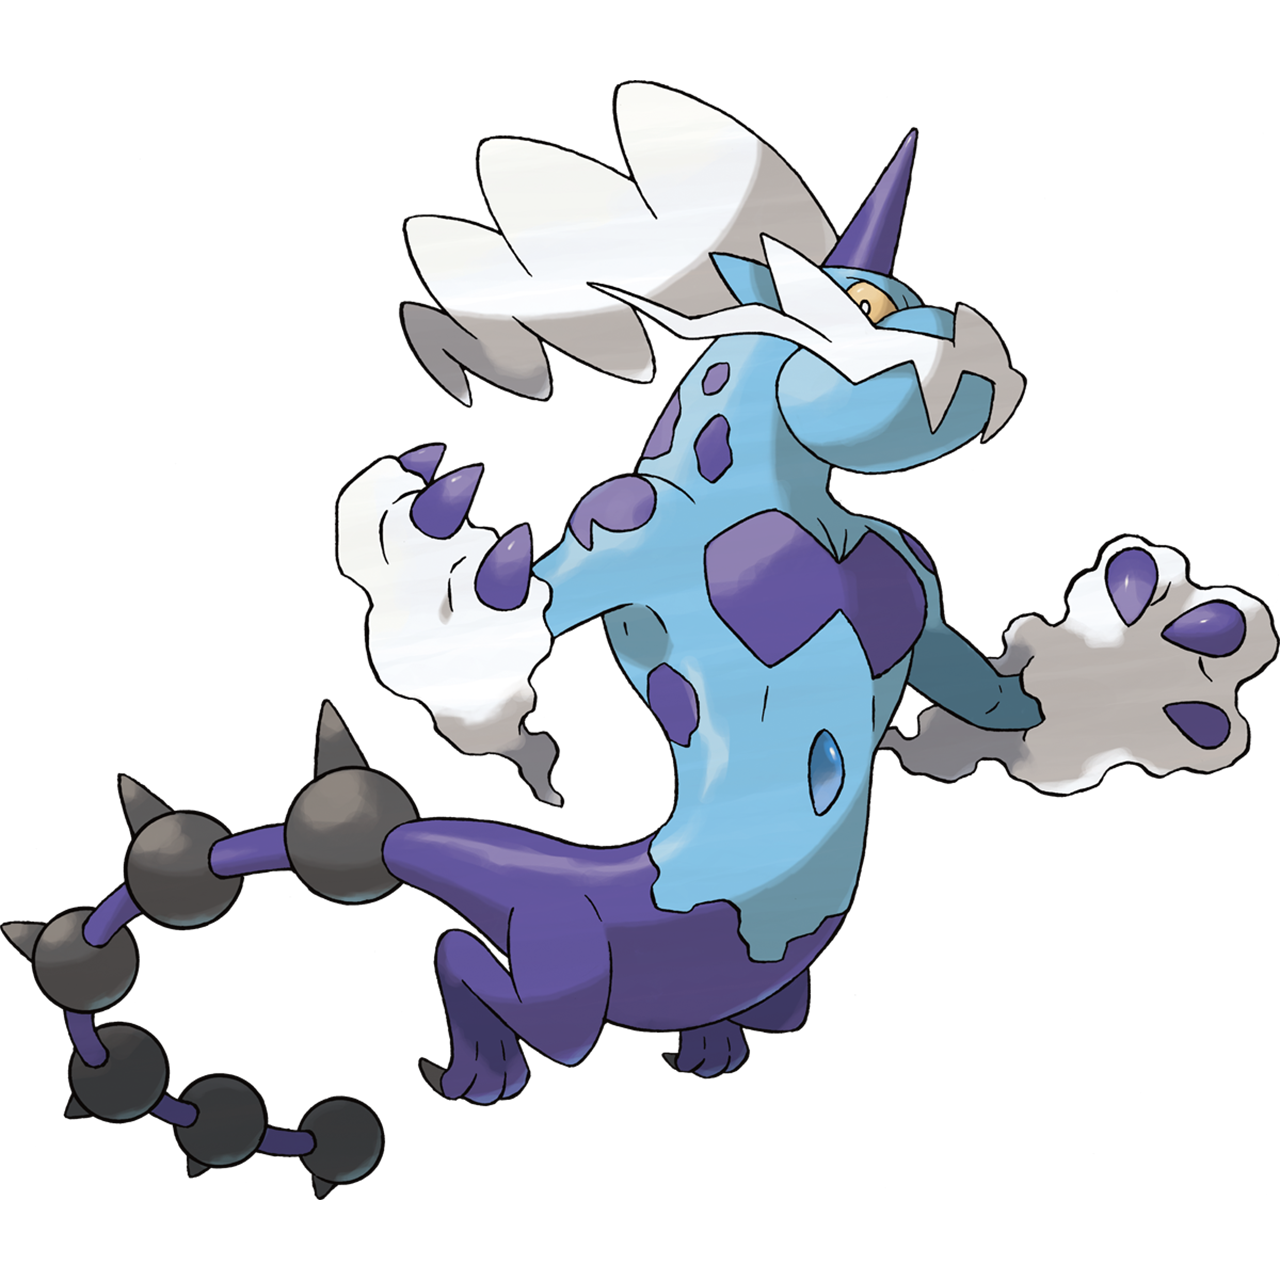 File:642Thundurus-Therian.png